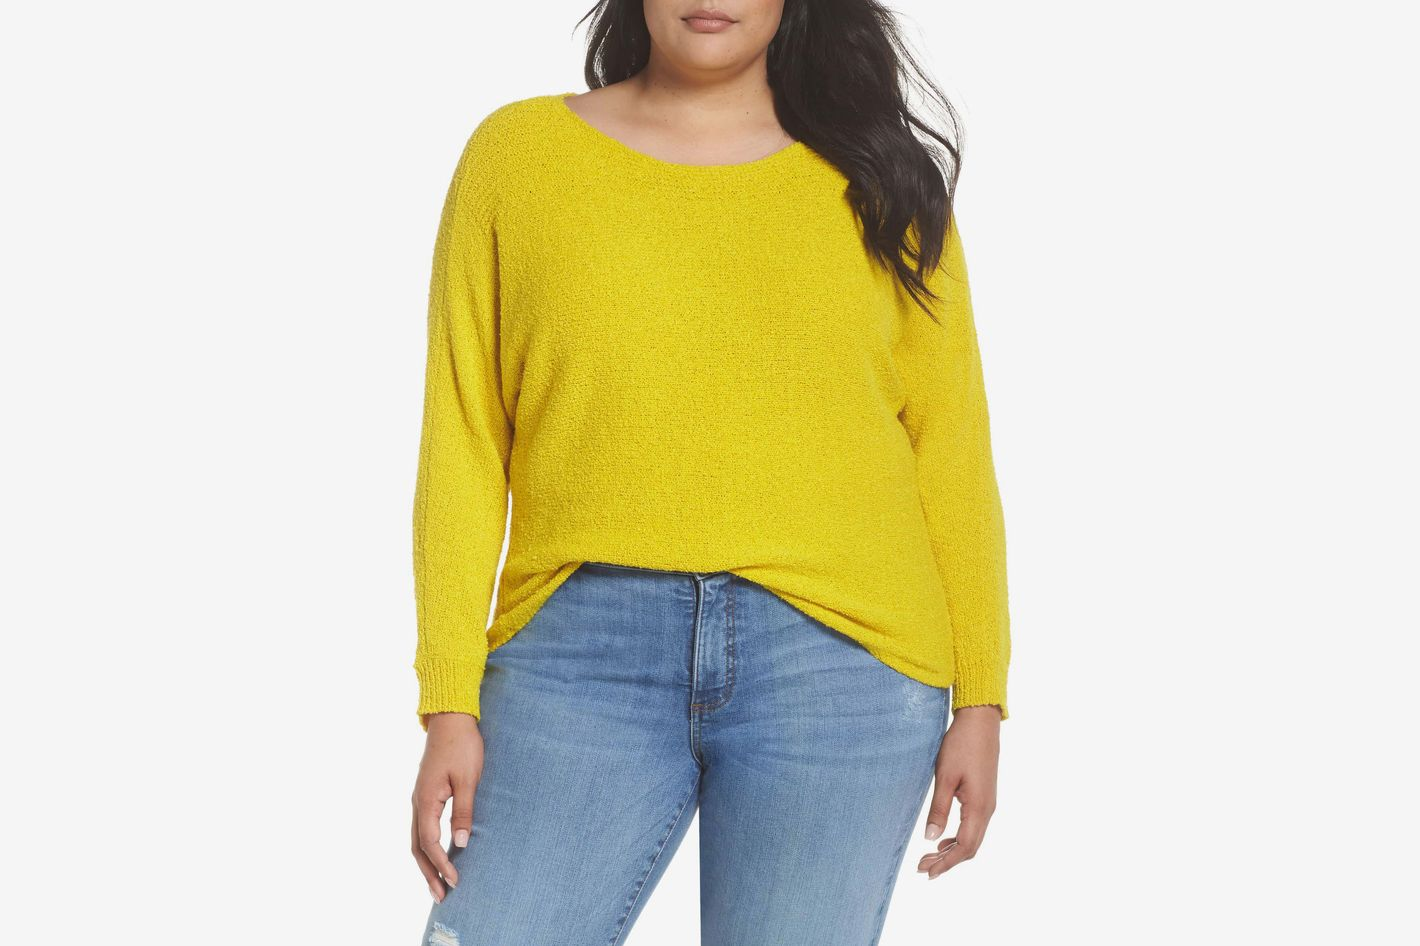 Calson Horizontal Pullover Sweater